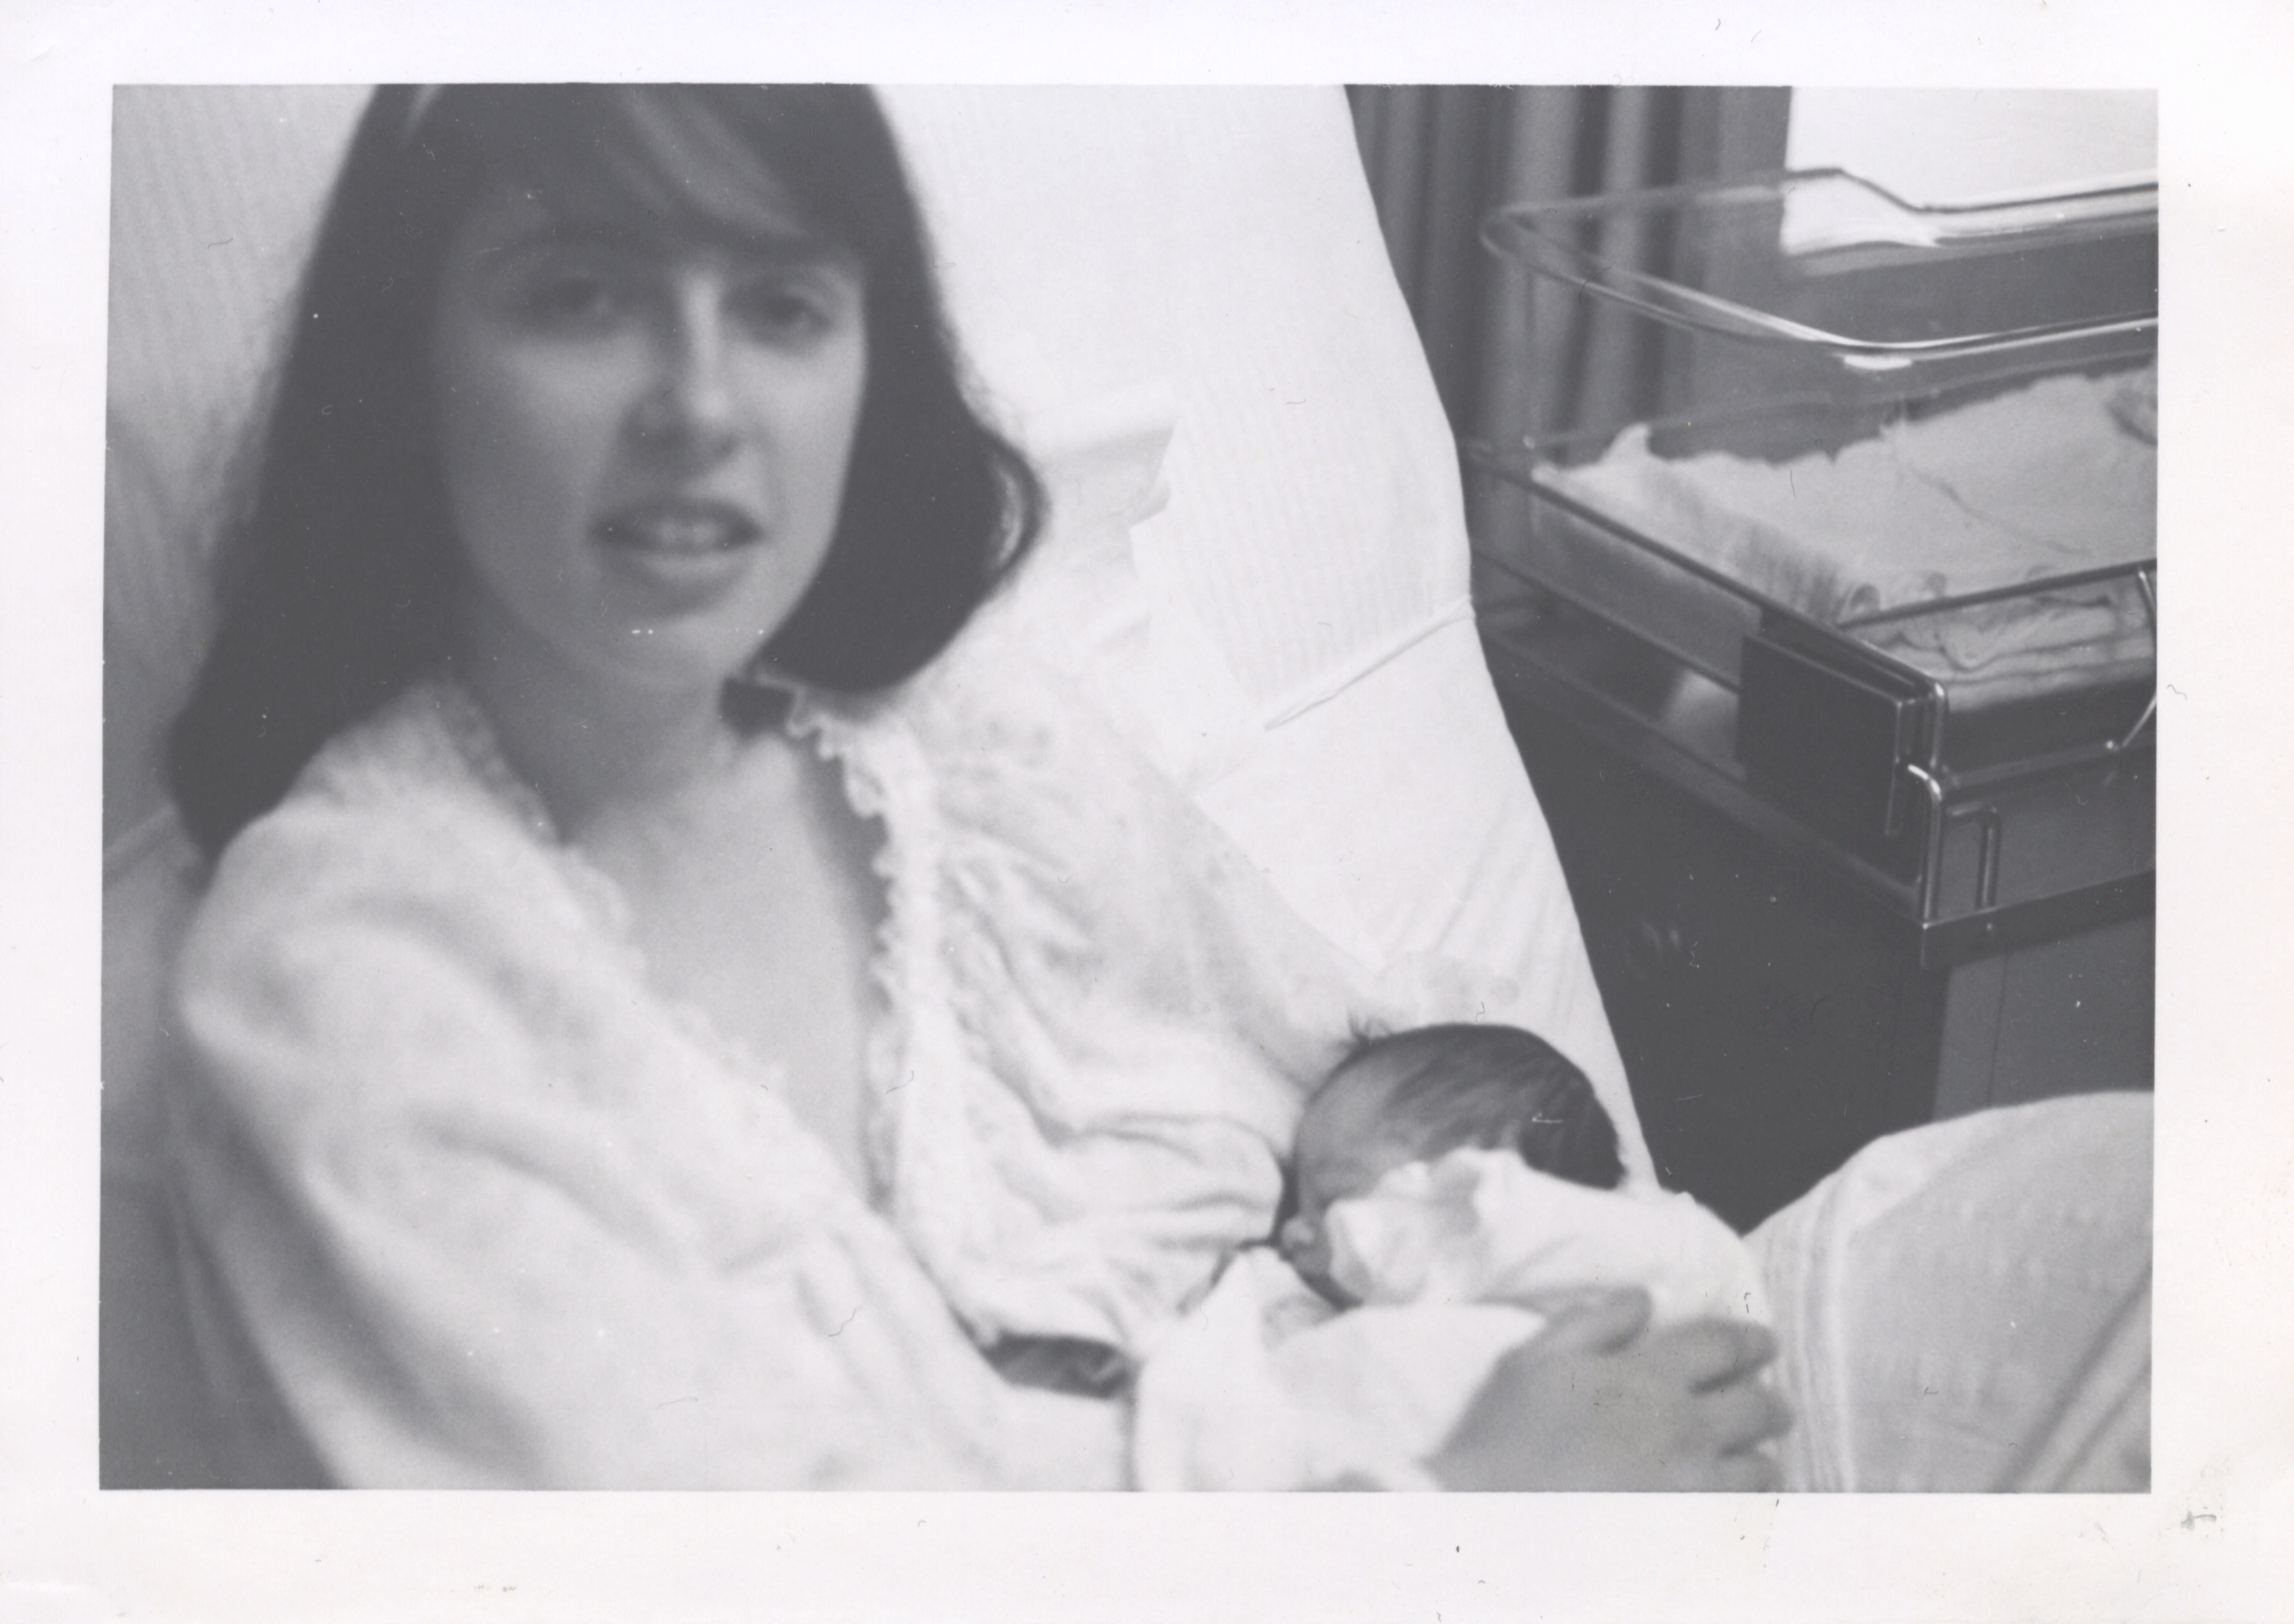 The day Lenora was born, May 17, 1963